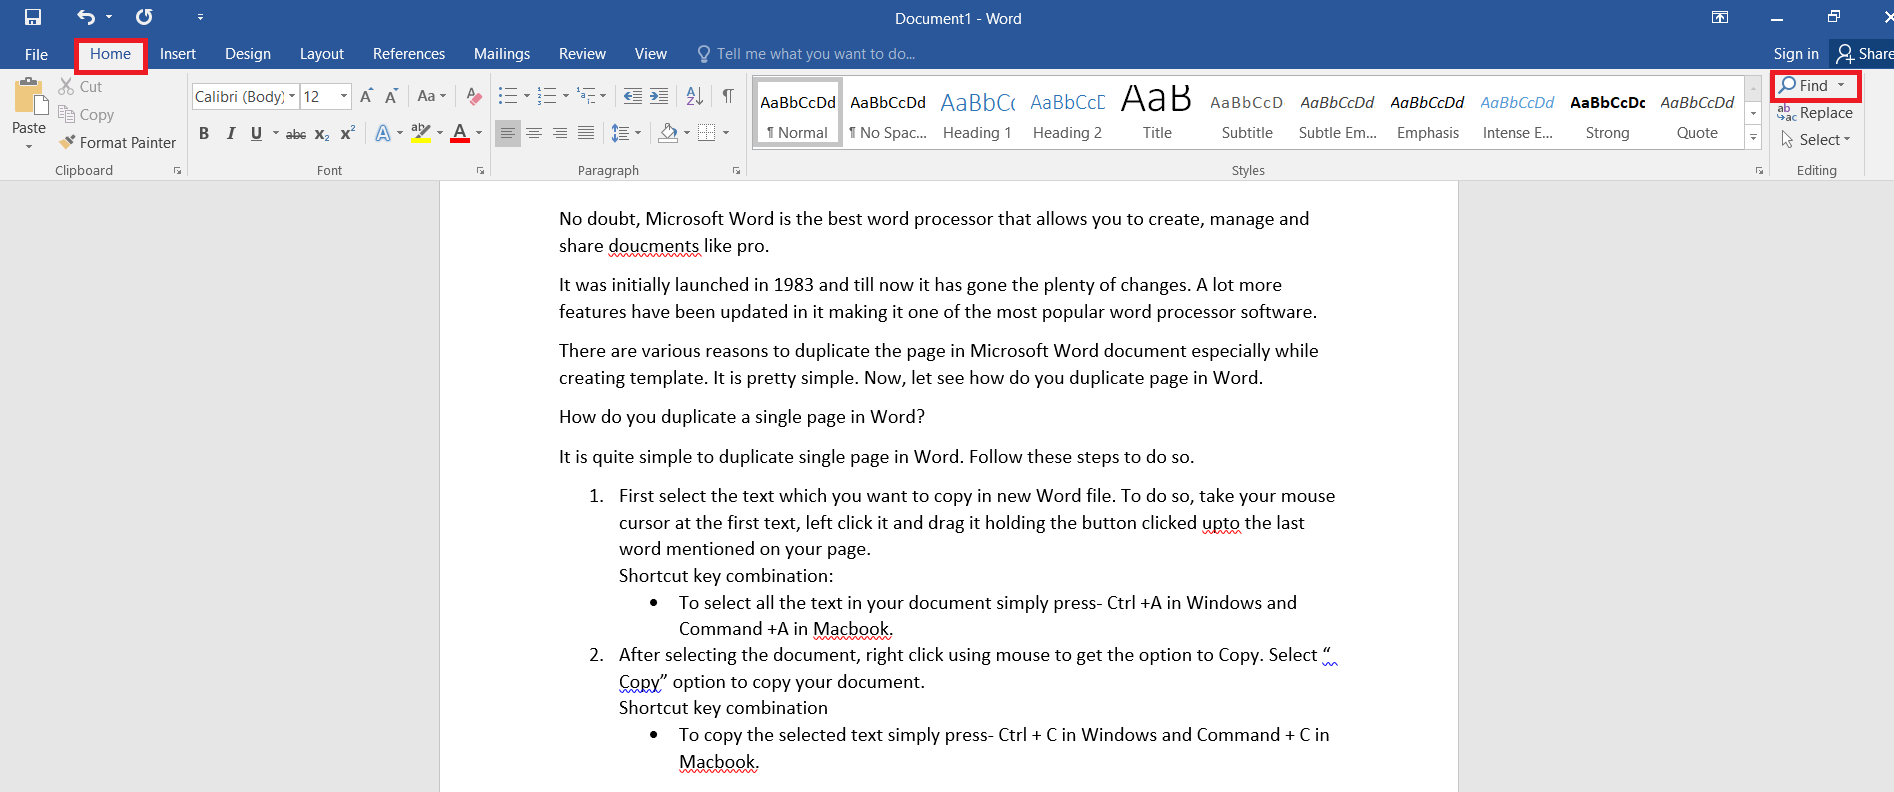 Find option in Word